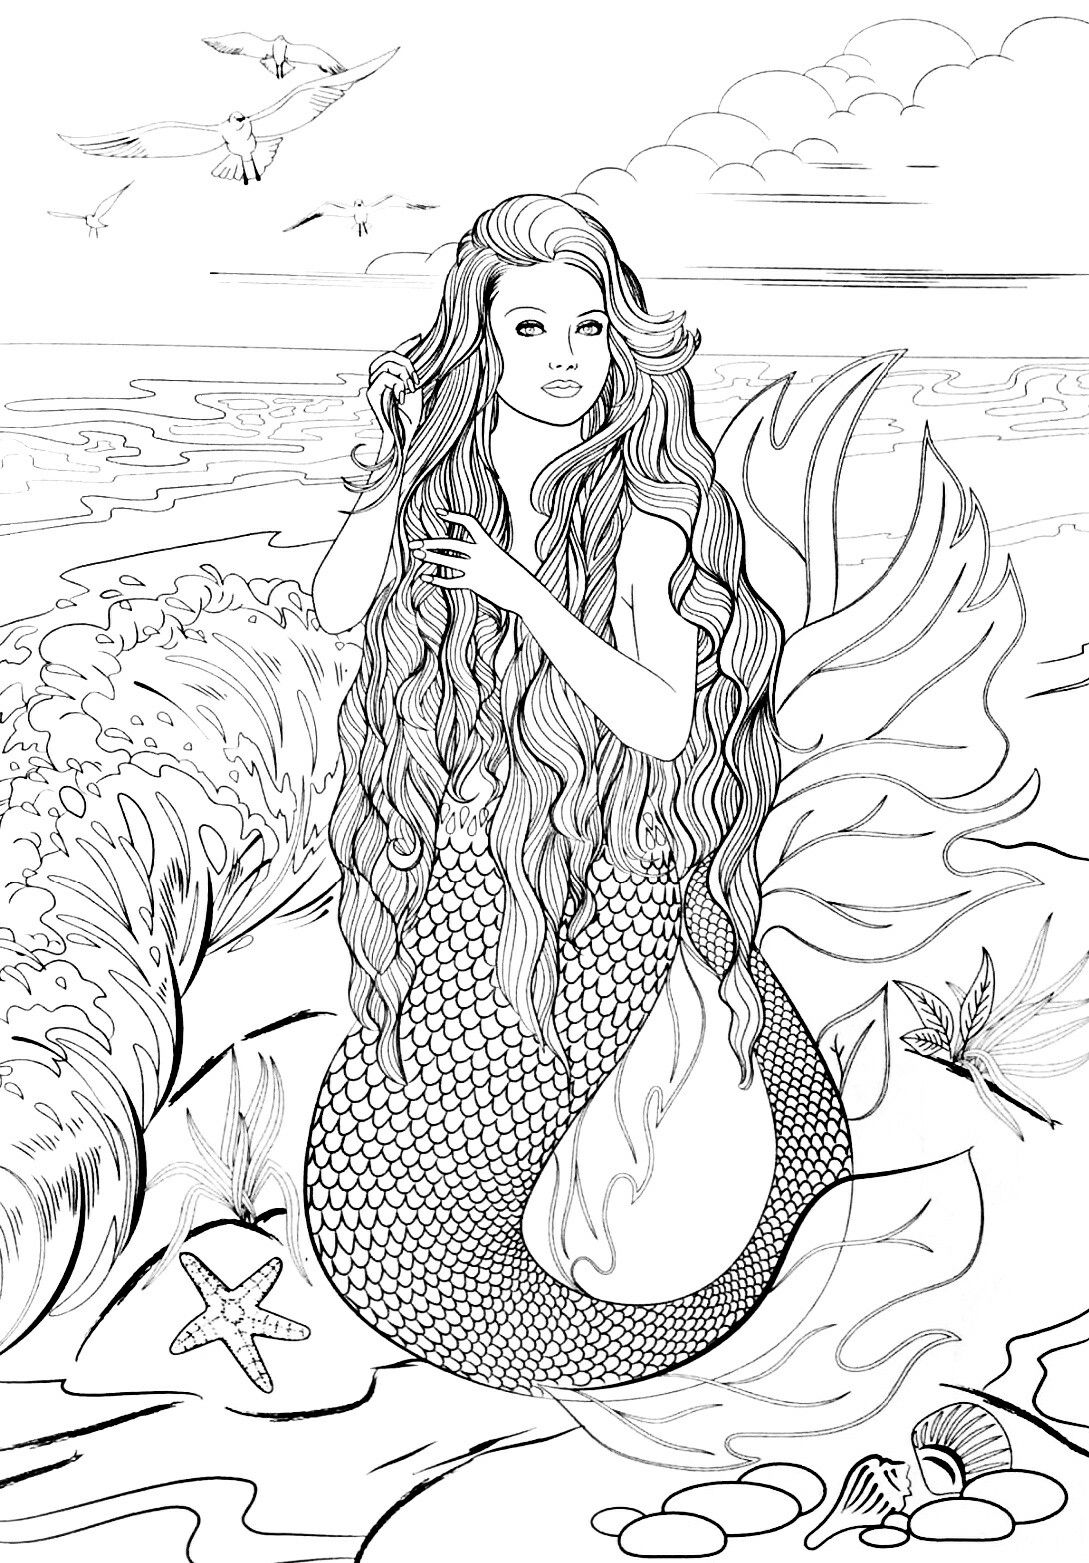 Pin By Elisabeth Quisenberry On Coloring Therapy Sirens Of The Sea Mermaid Coloring Pages Steampunk Coloring Mermaid Art